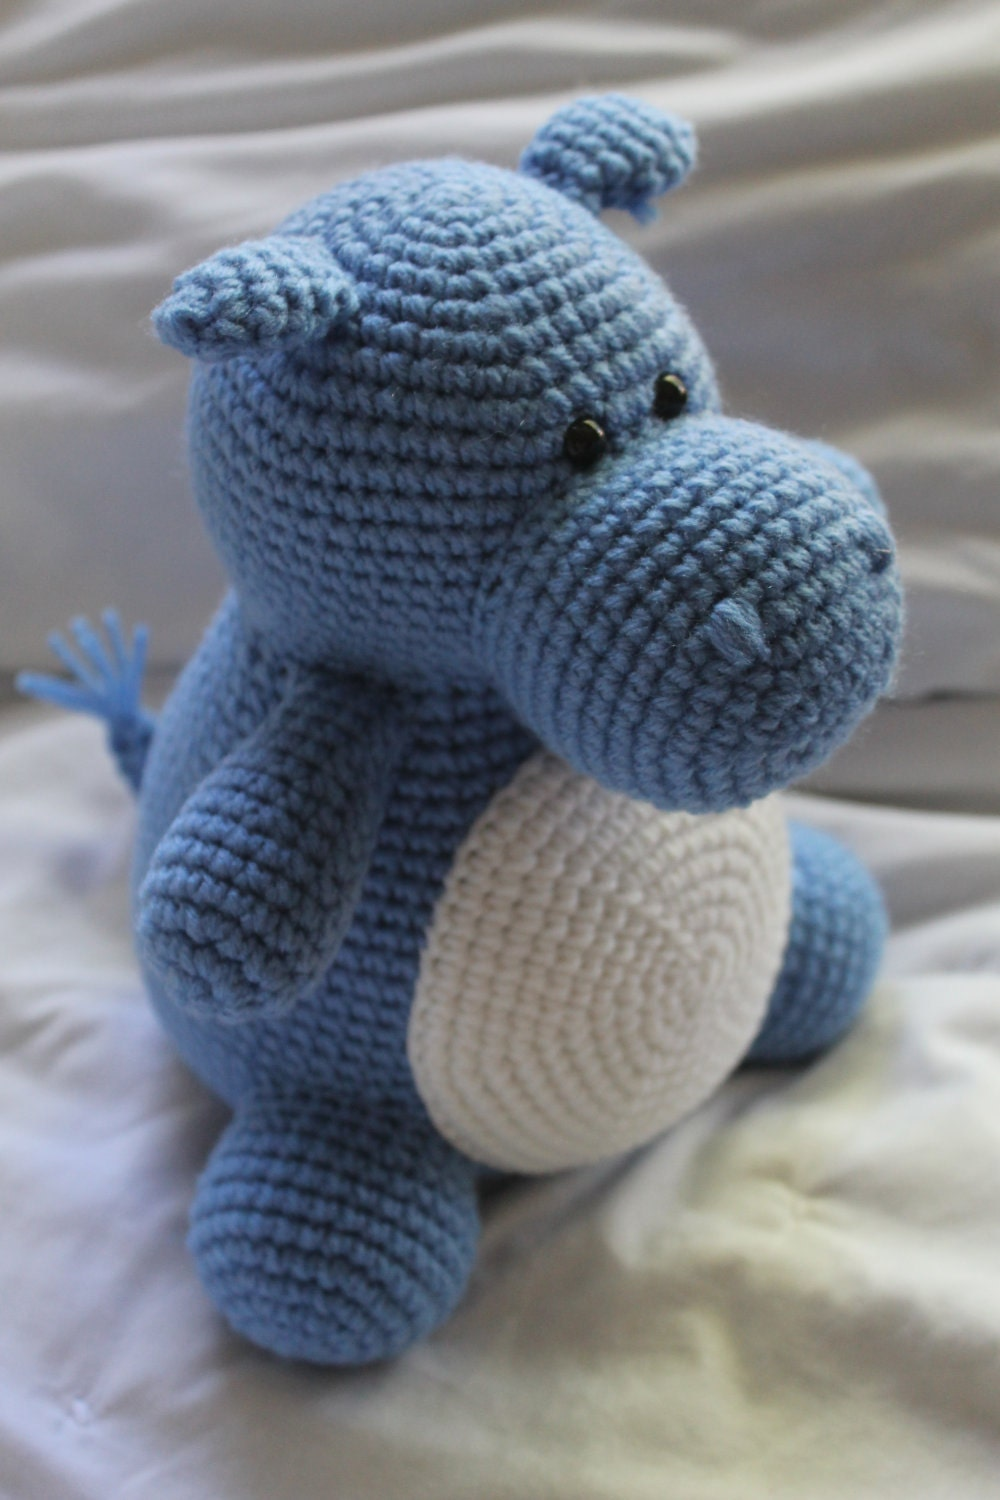 Amigurumi Hippo Pattern Free : Hilda the Hippo Crochet Amigurumi PATTERN ONLY by daveydreamer